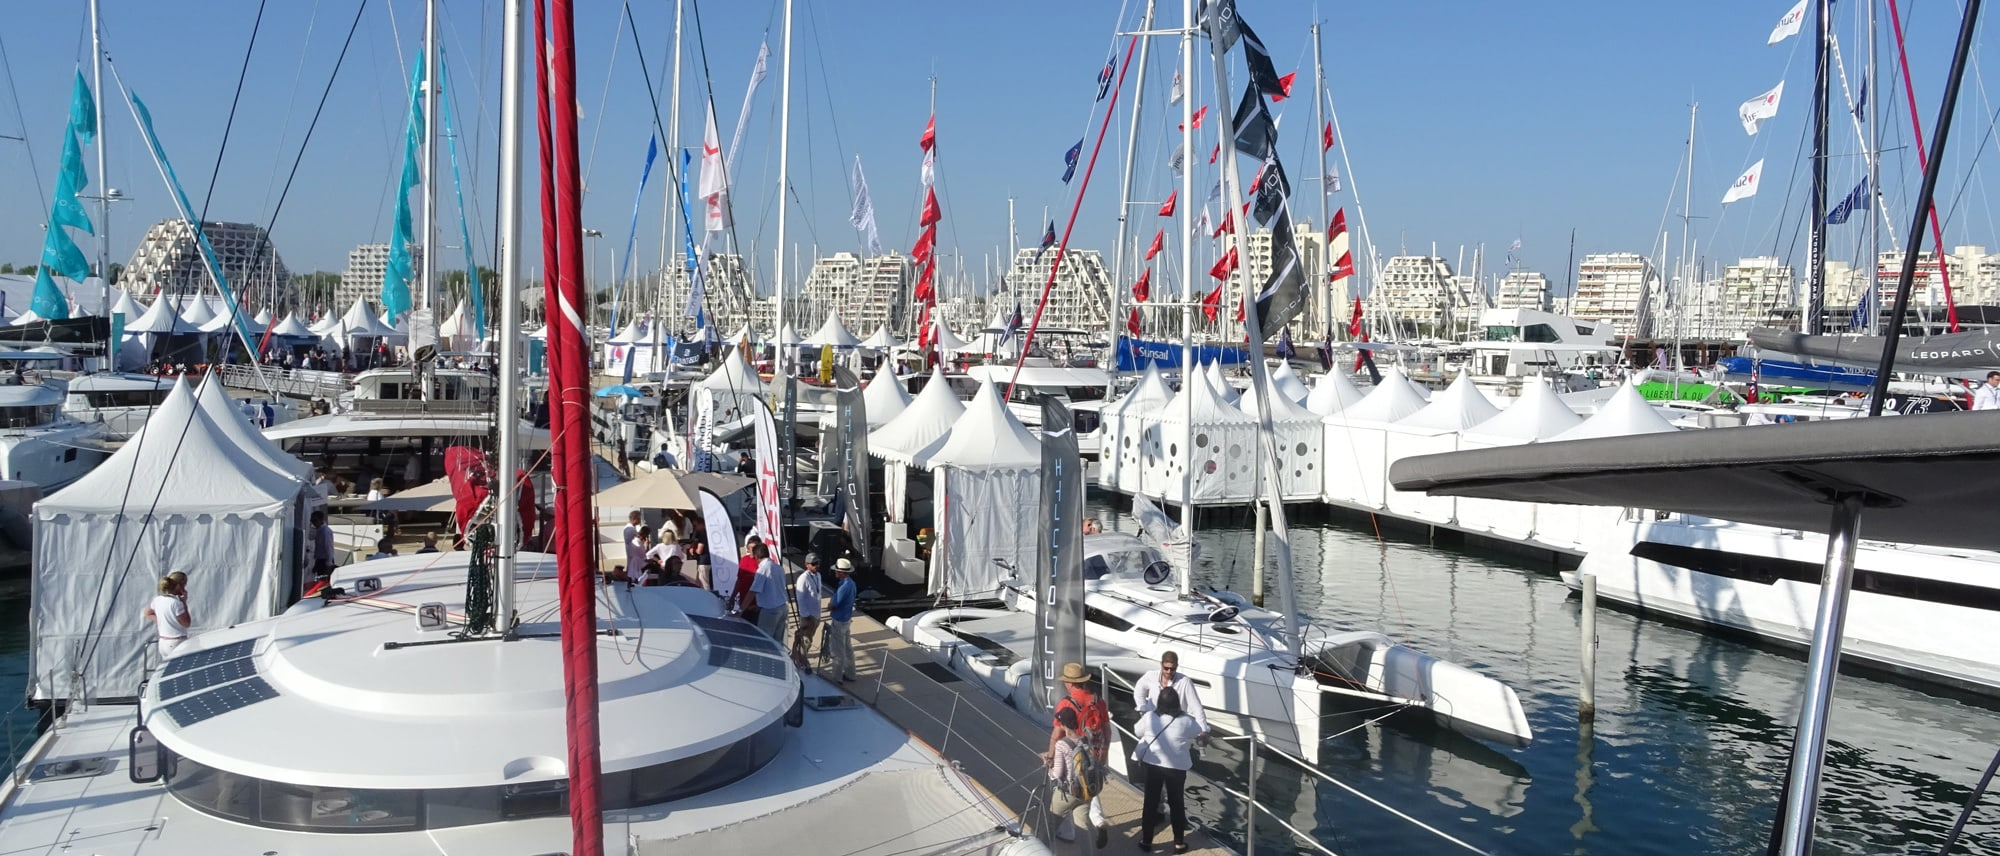 Try Tiwal 3 at the Multihull Boat Show